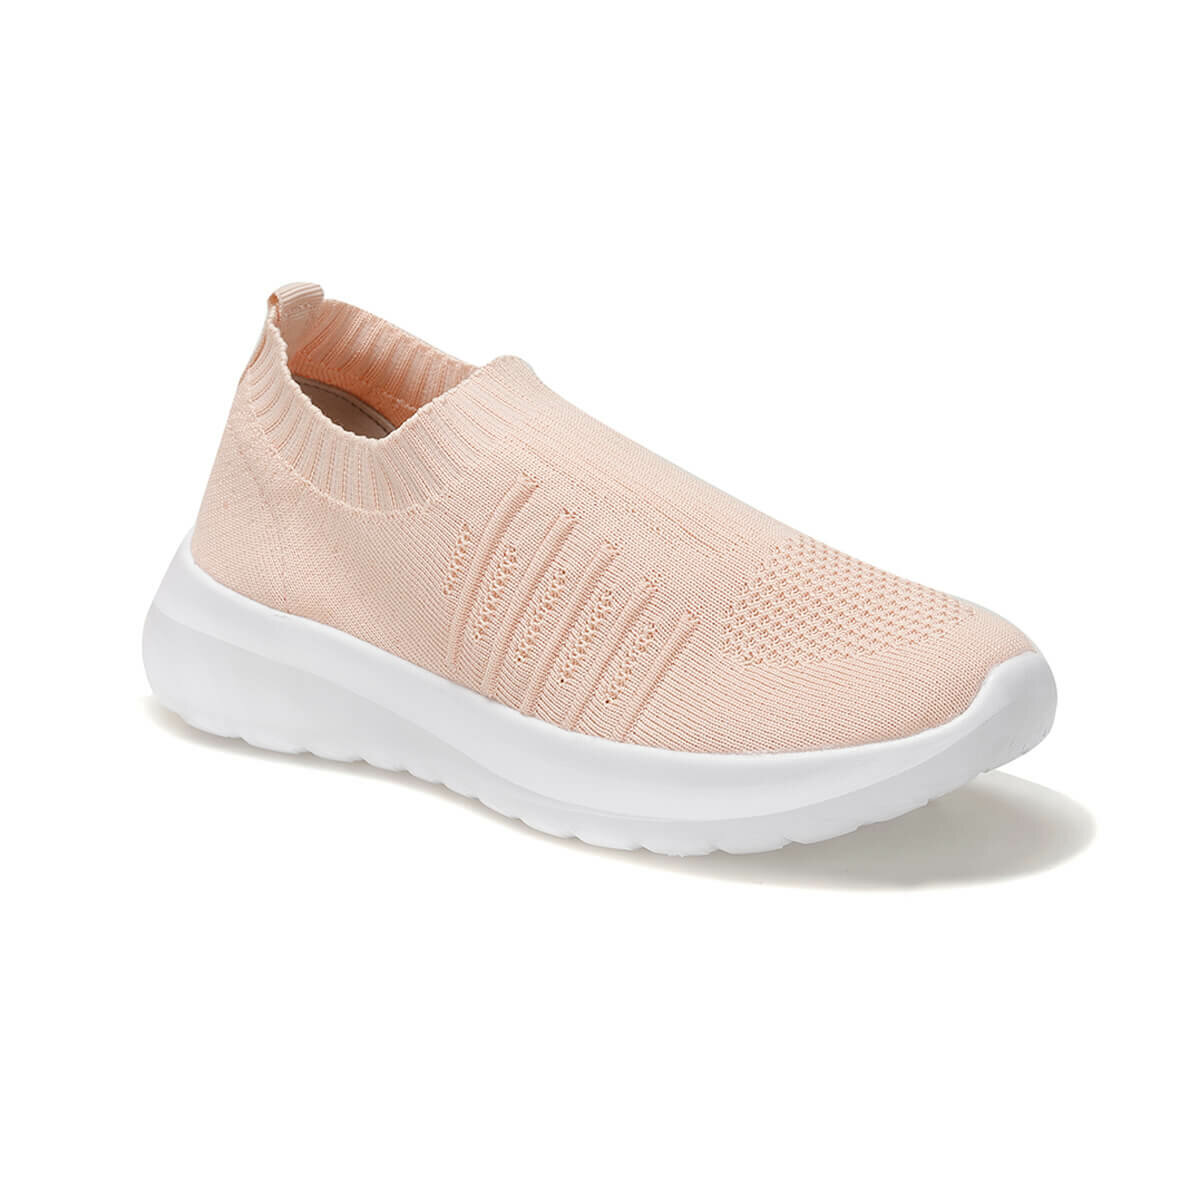 FLO DOLY W Salmon Women Sneaker Shoes Torex